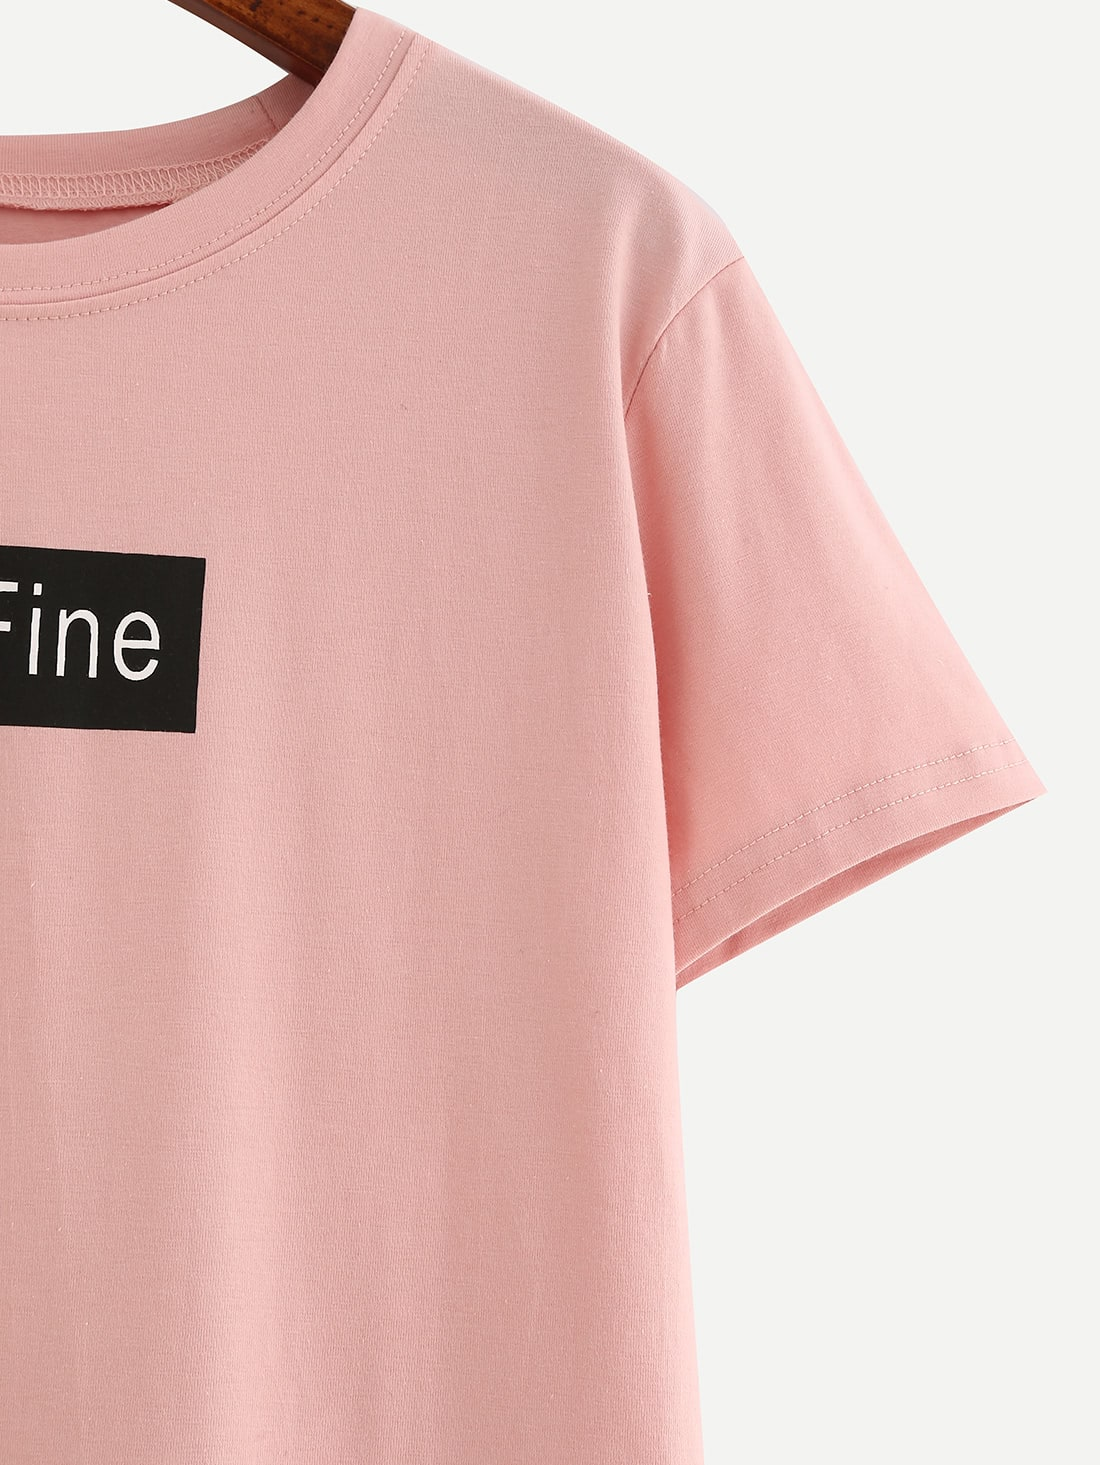 Letter print pink t shirt shein sheinside for Letter print t shirt